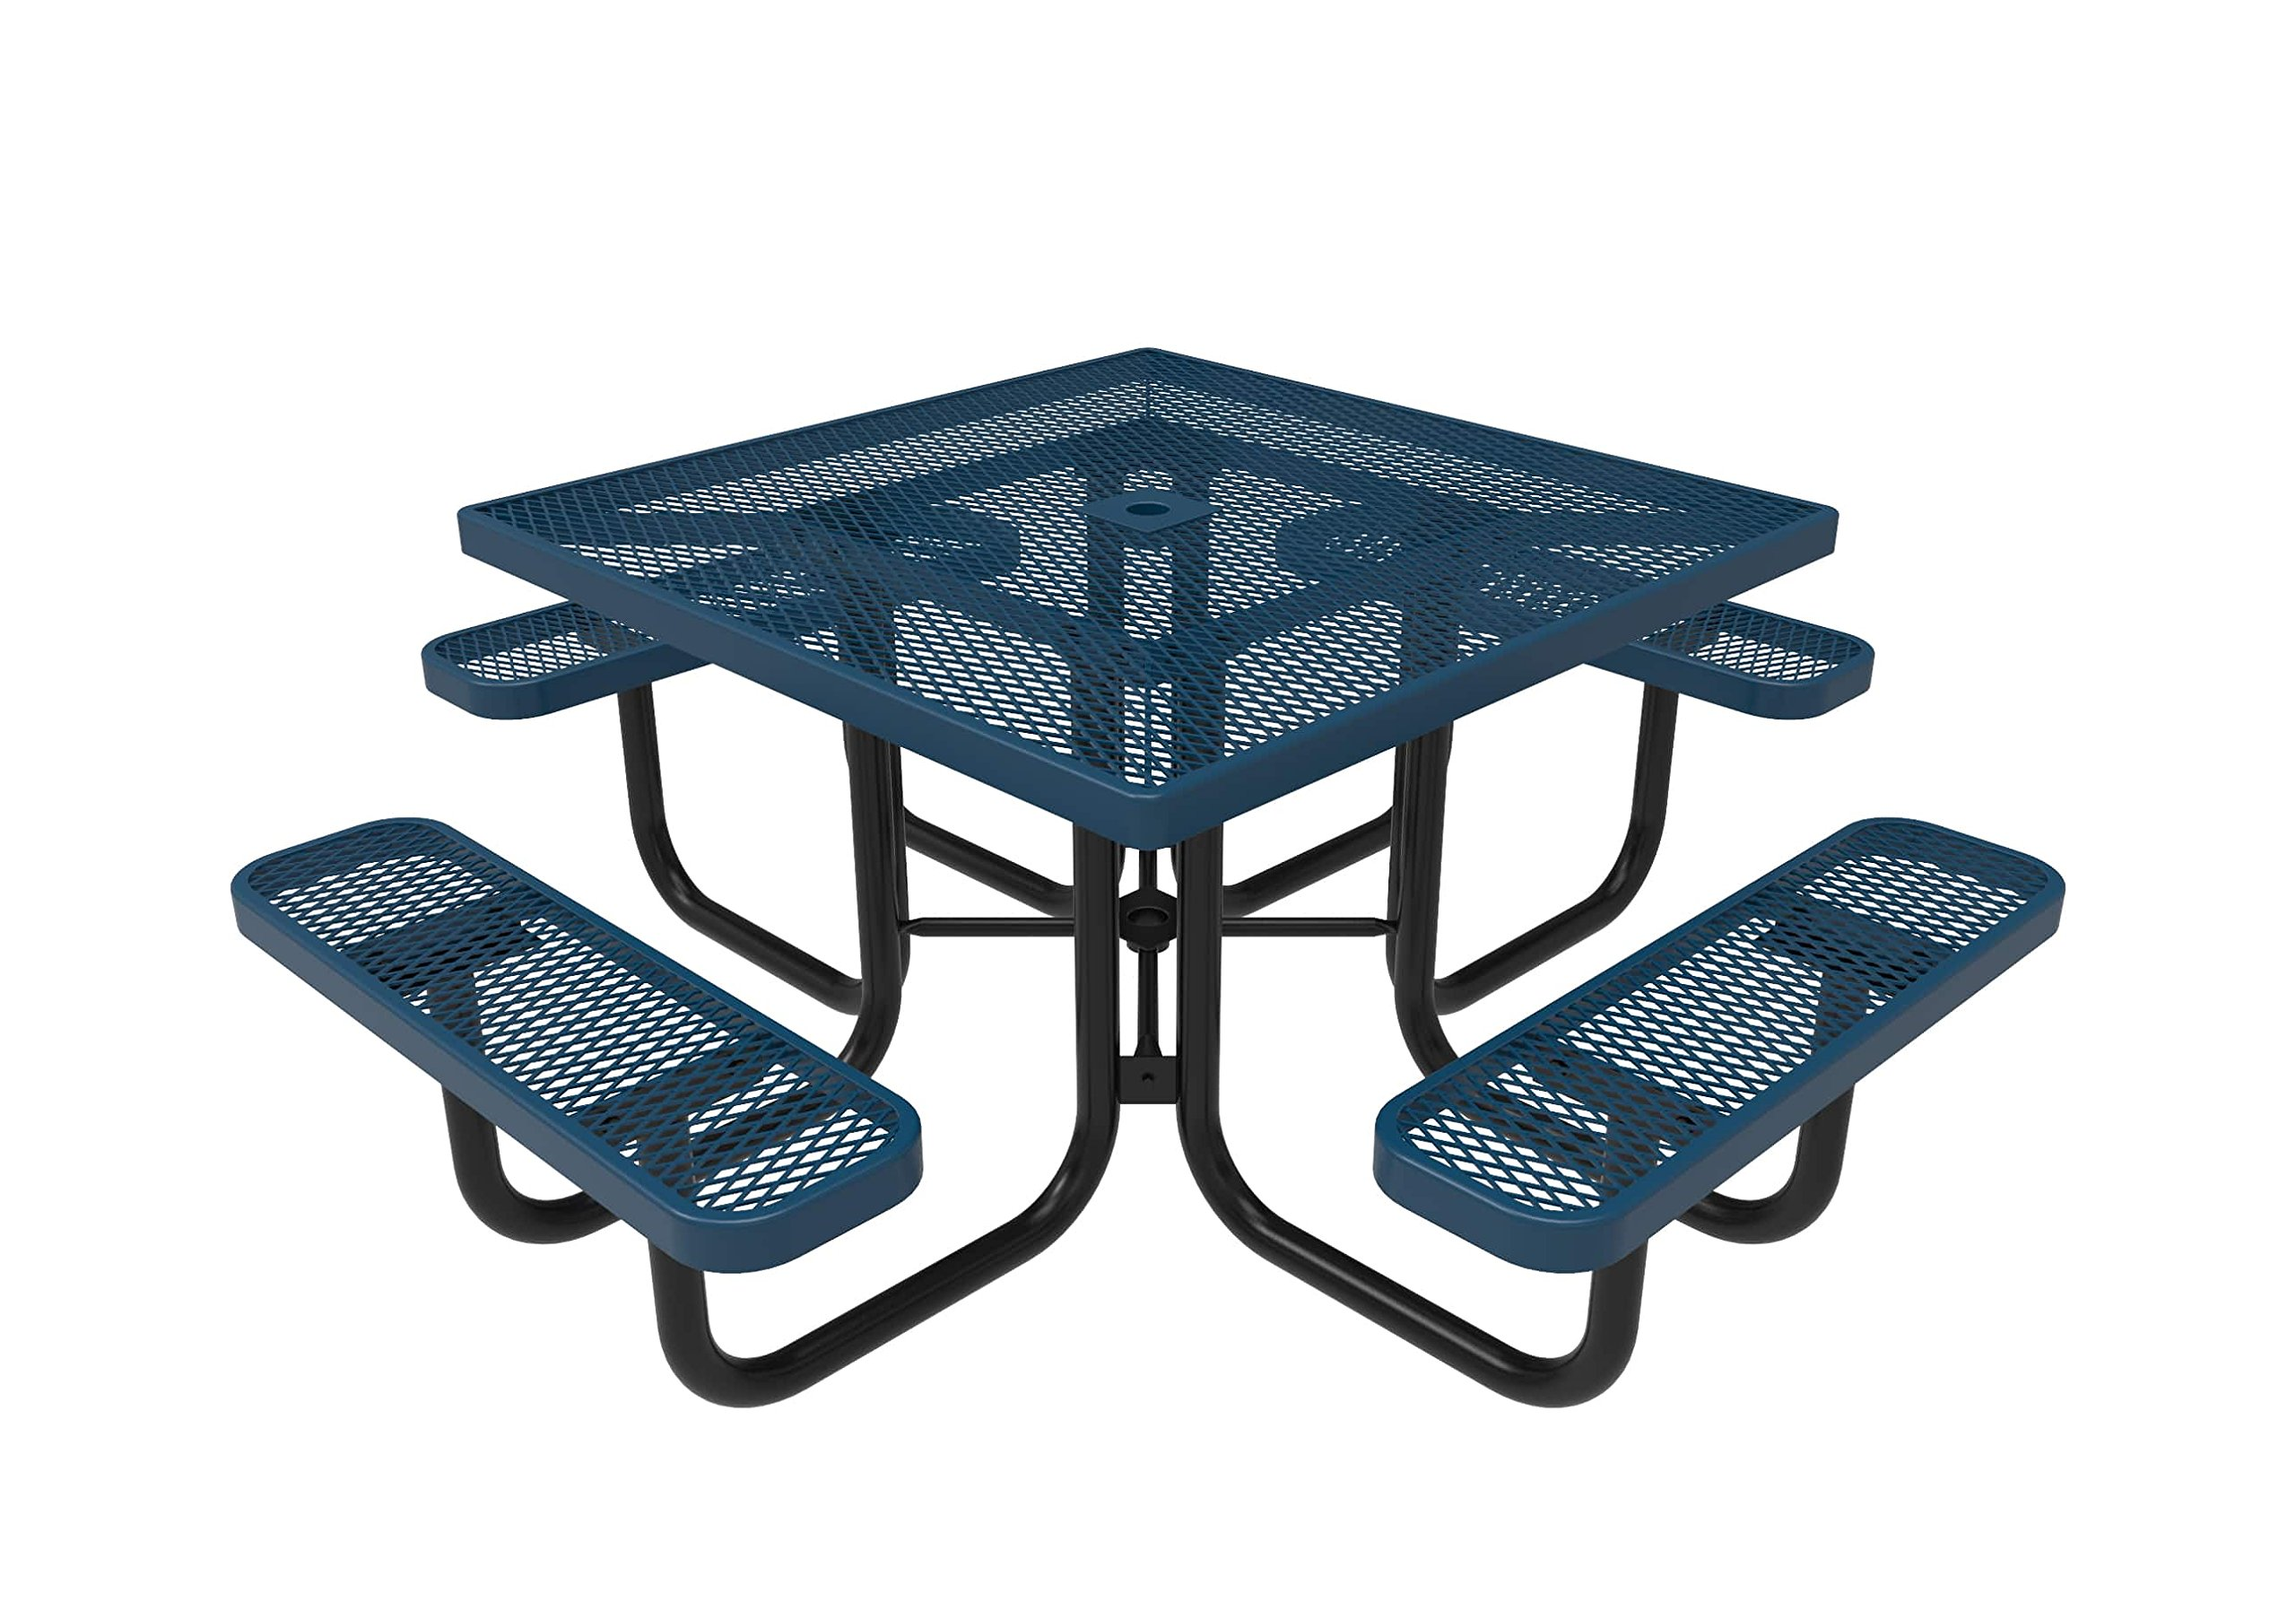 Coated Outdoor Furniture TSQ-LBL Top Square Portable Picnic Table, 46-Inch, Light Blue by CoatedOutdoorFurniture